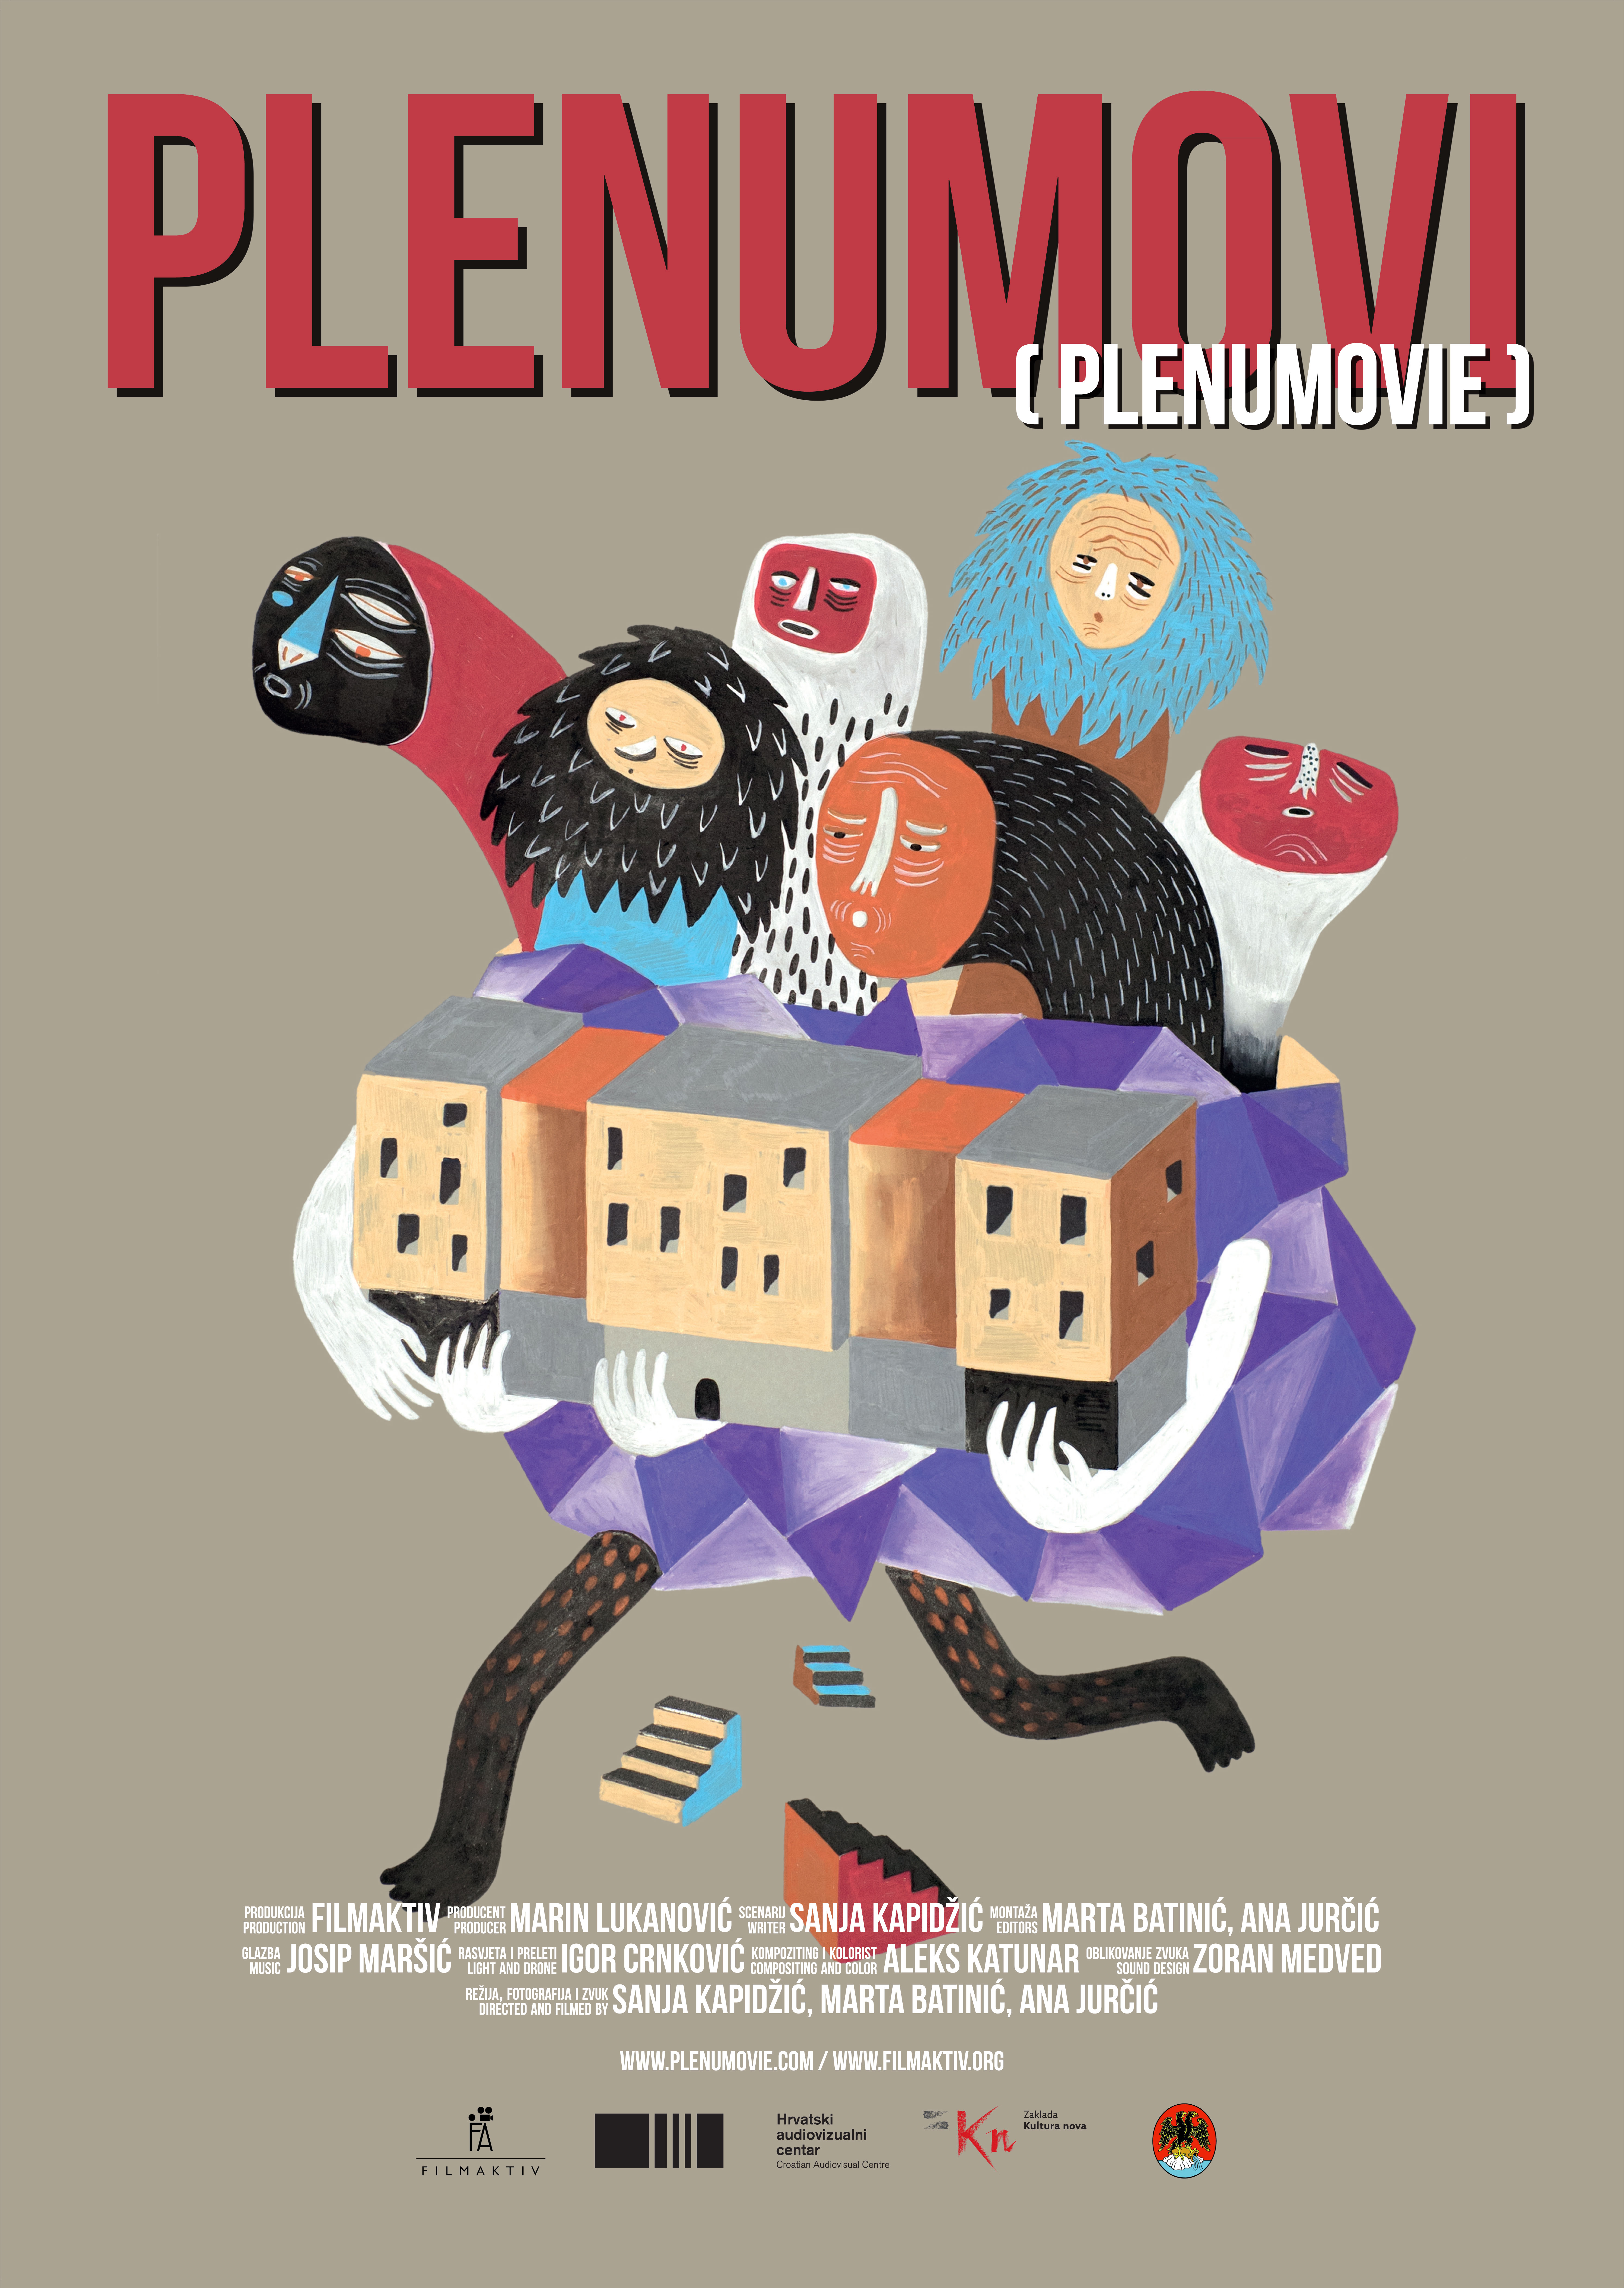 The oofficial poster of the documentary film Plenumovie